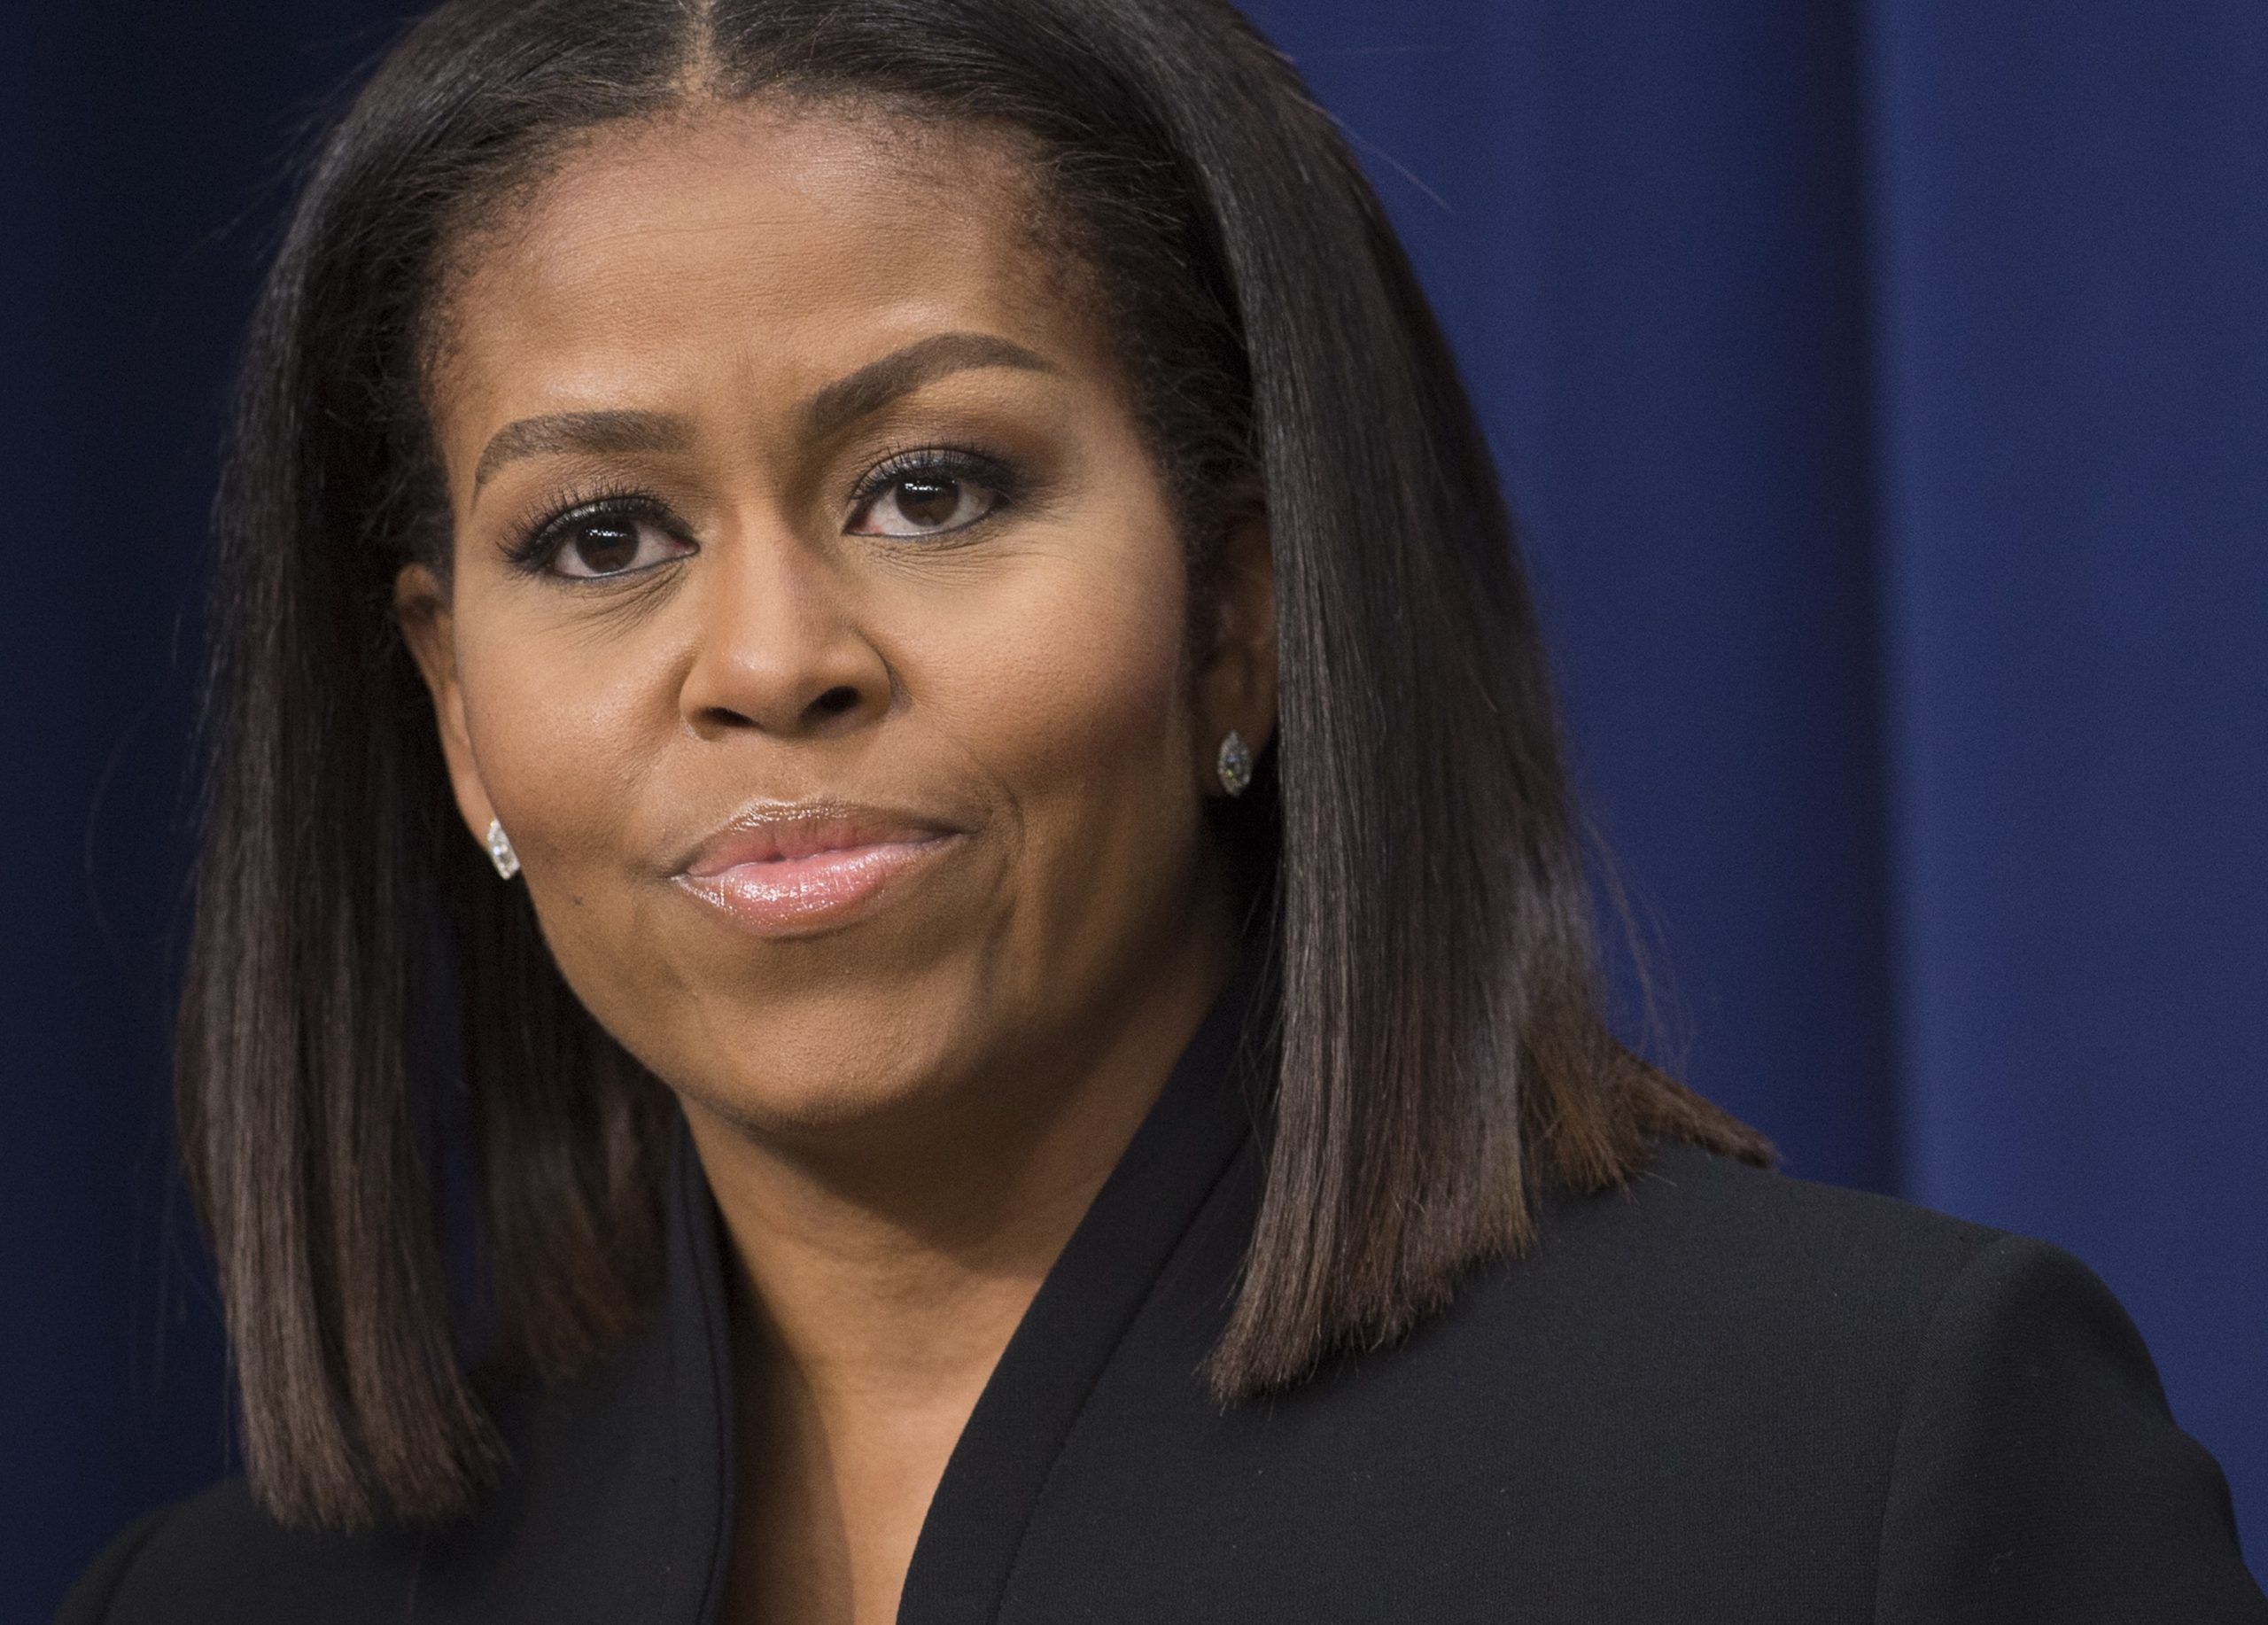 Michelle Obama: It's up to everyone to root out racism